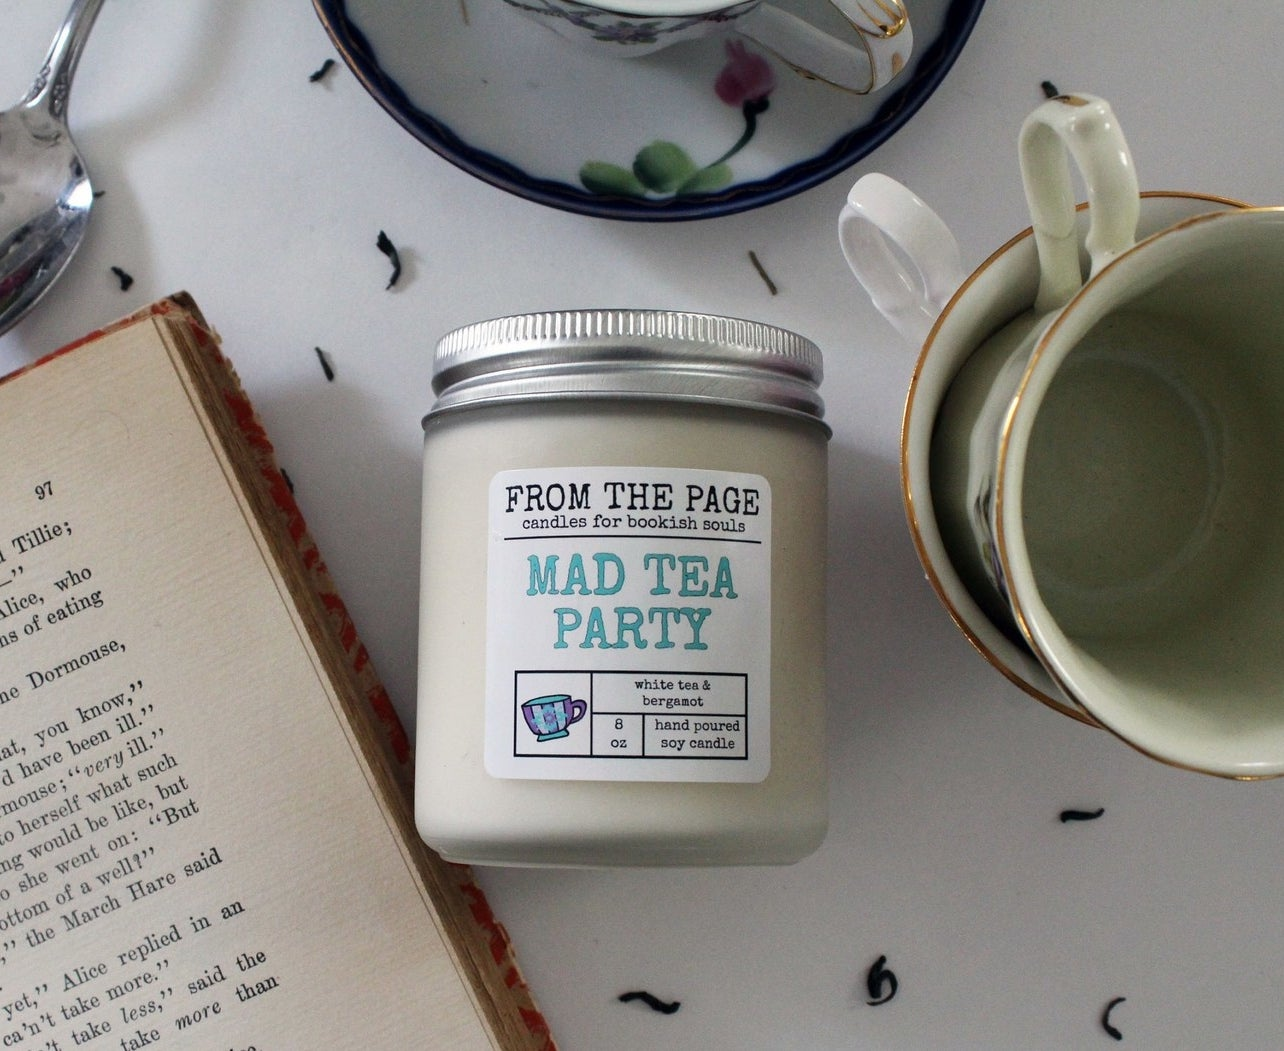 If you're wondering what a mad tea party smells like, it smells like white tea and bergamot. This candle has approximately 40–50 hours of burn time. Get it from FromthePage on Etsy for $12.50.